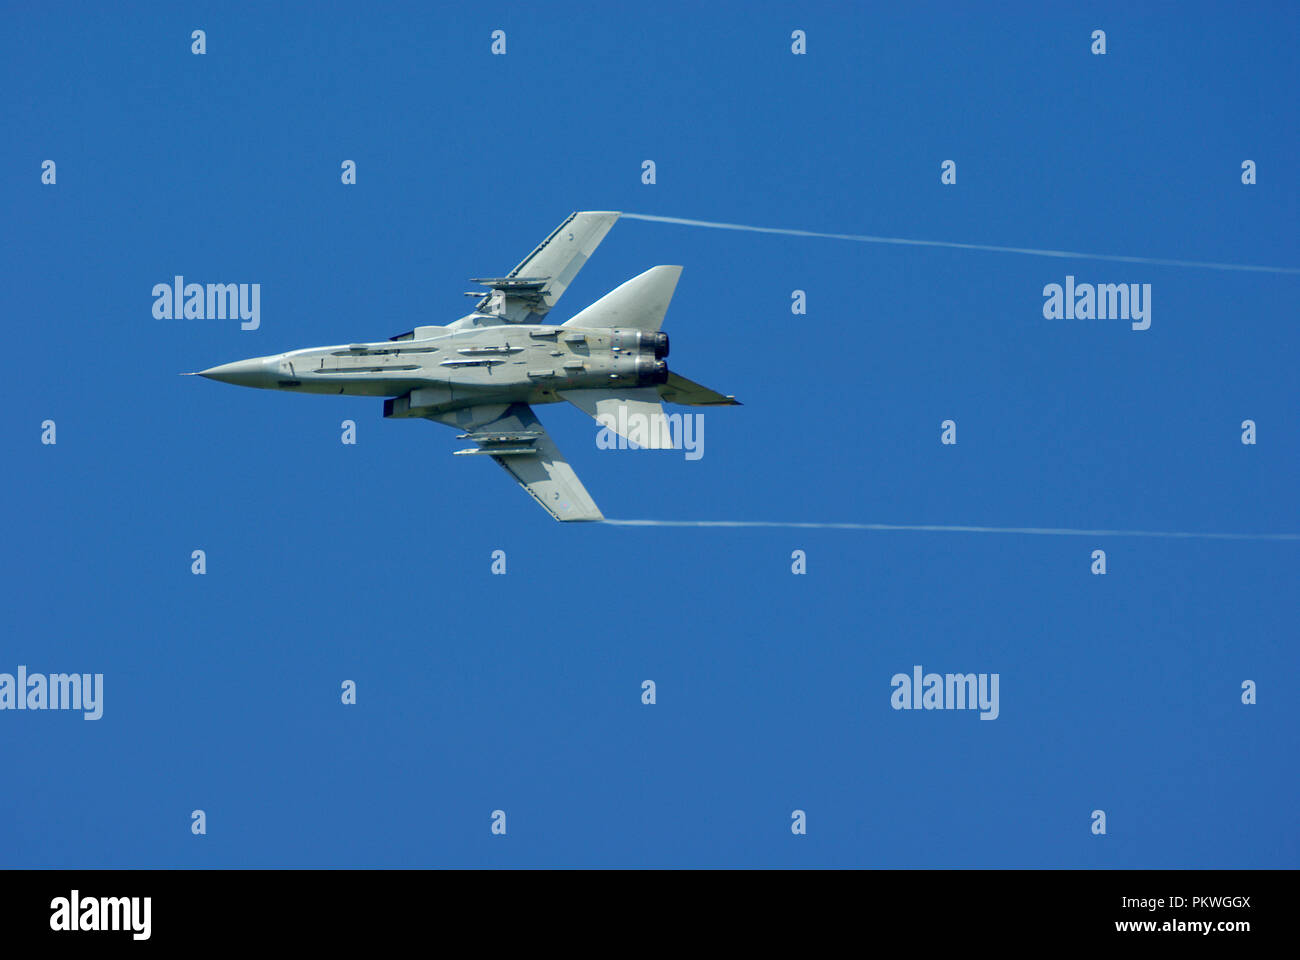 Royal Air Force Panavia Tornado F3 jet fighter plane. RAF Tornado ADV flying in clear blue sky. Fast jet. Space for copy. Tornado Air Defence Variant - Stock Image